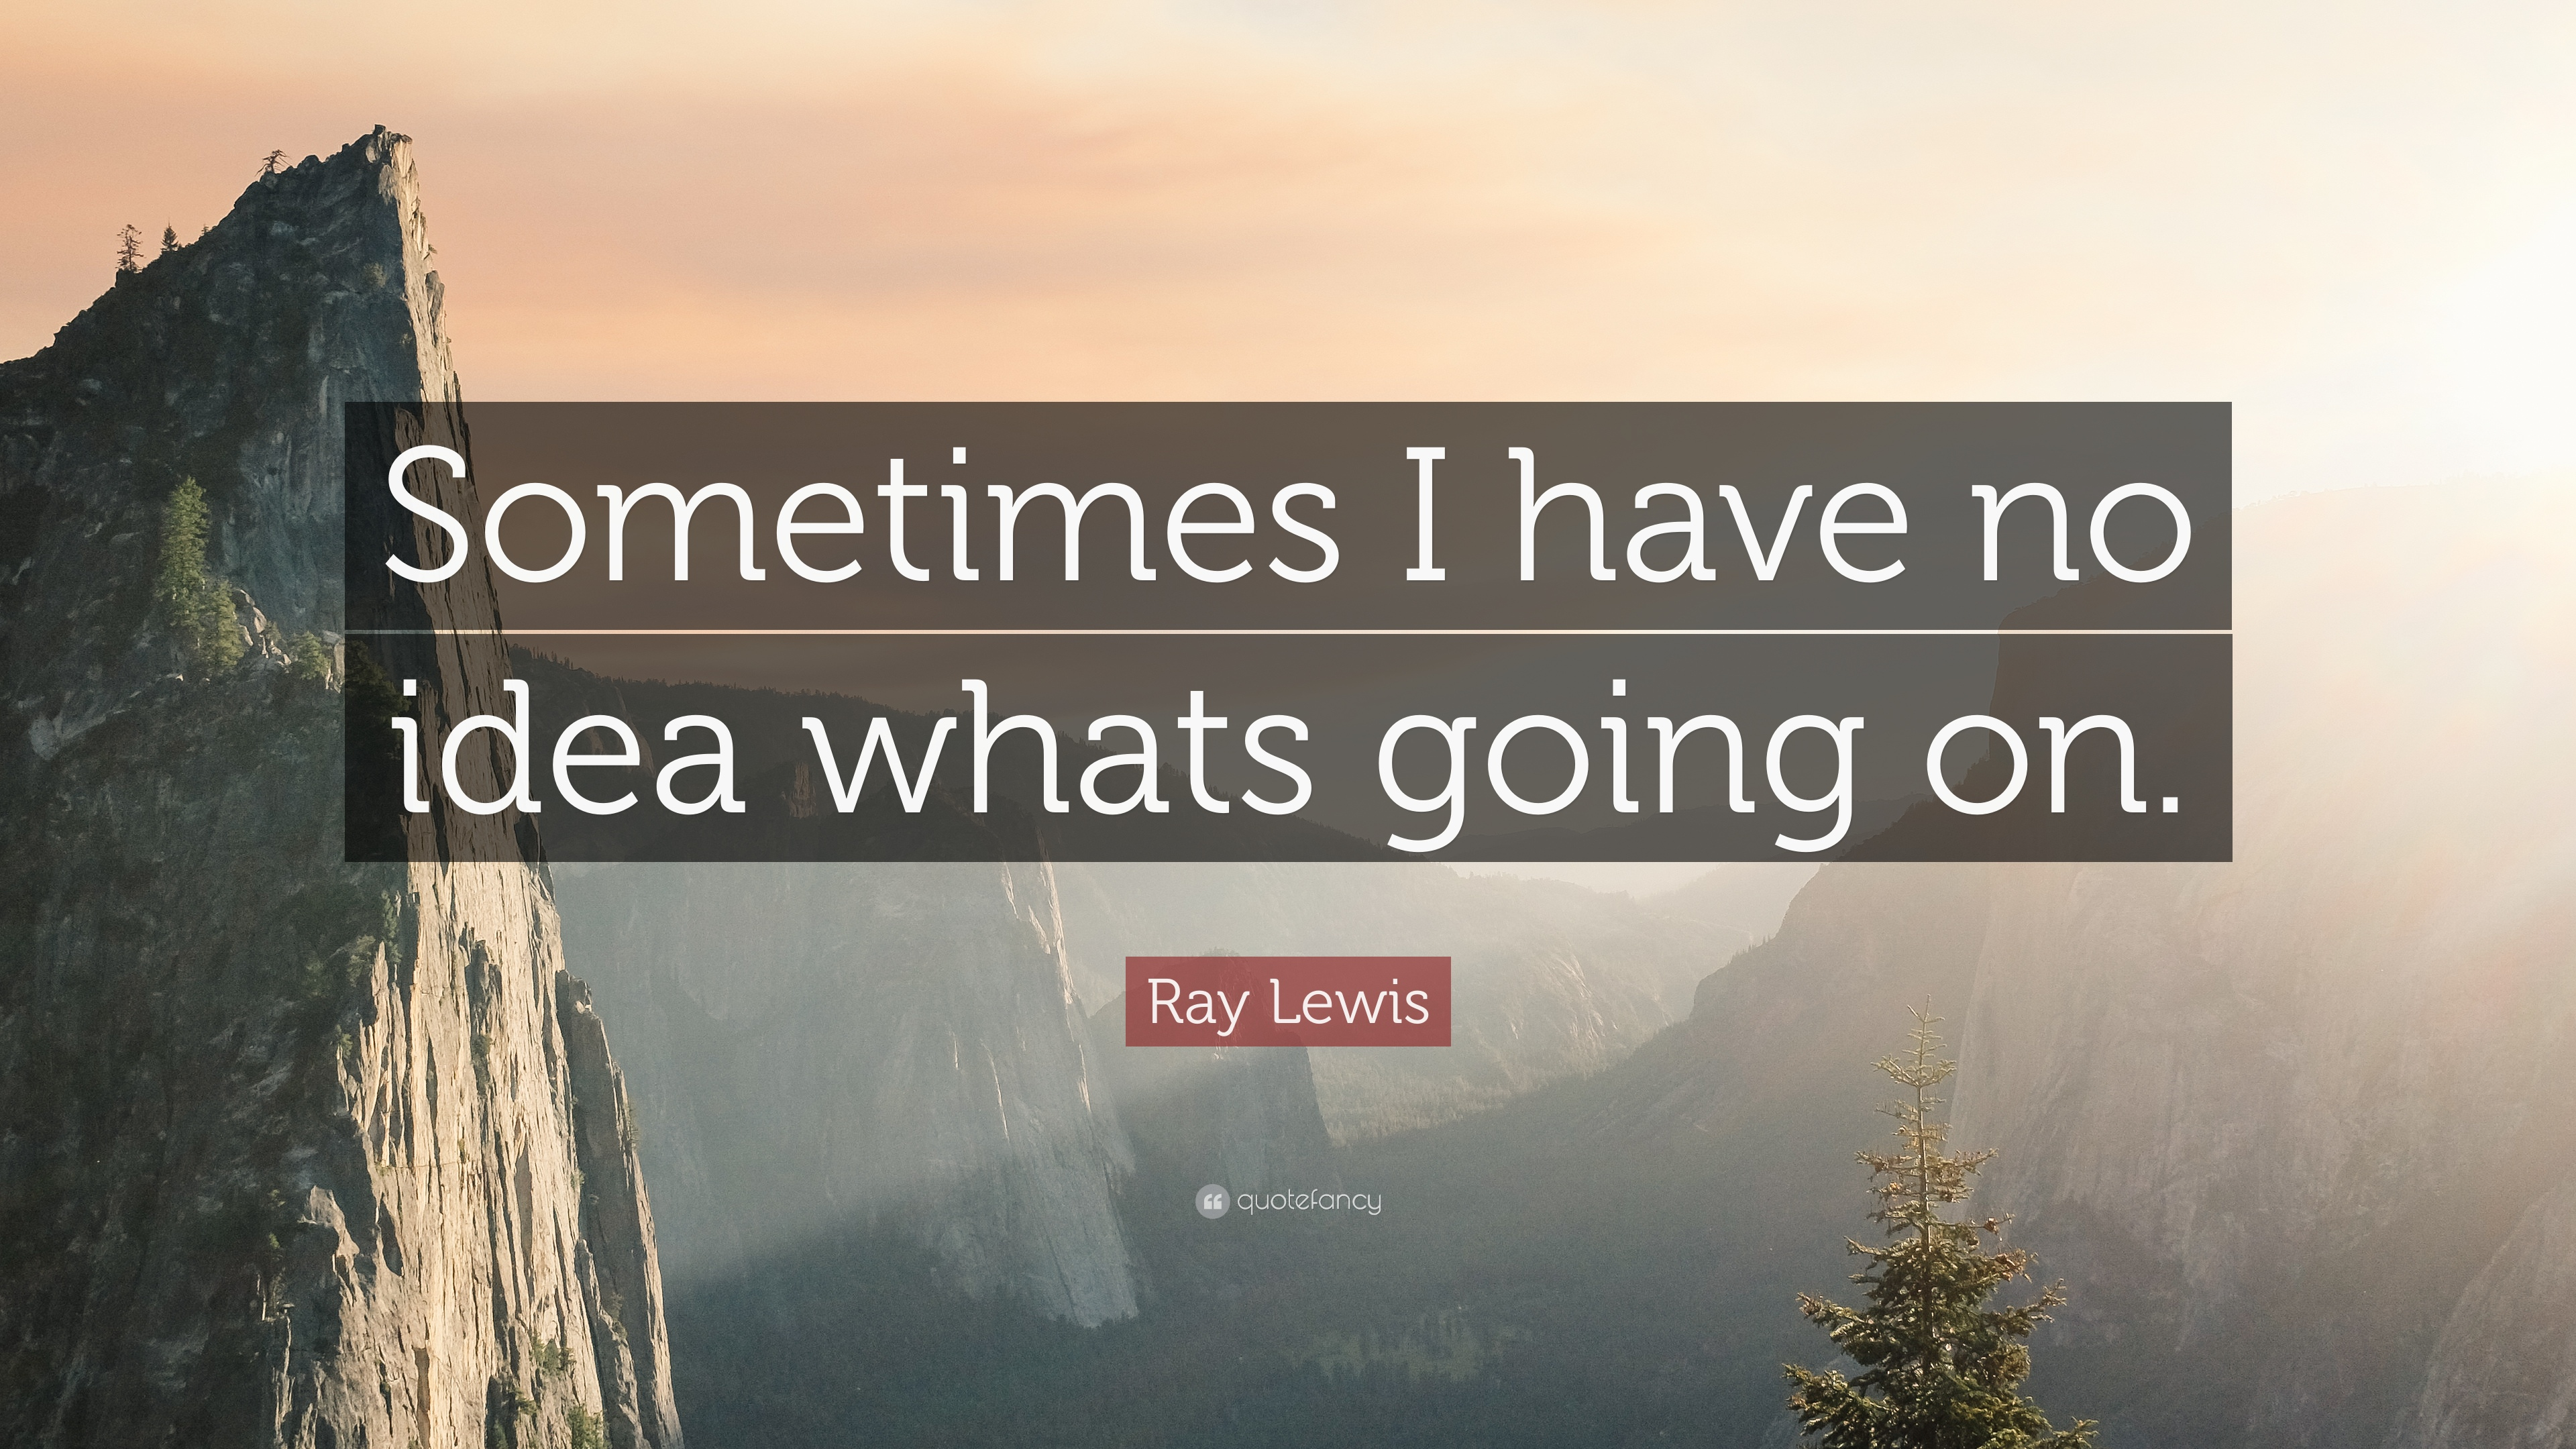 Ray Lewis Motivational Quotes: Ray Lewis Quotes (100 Wallpapers)